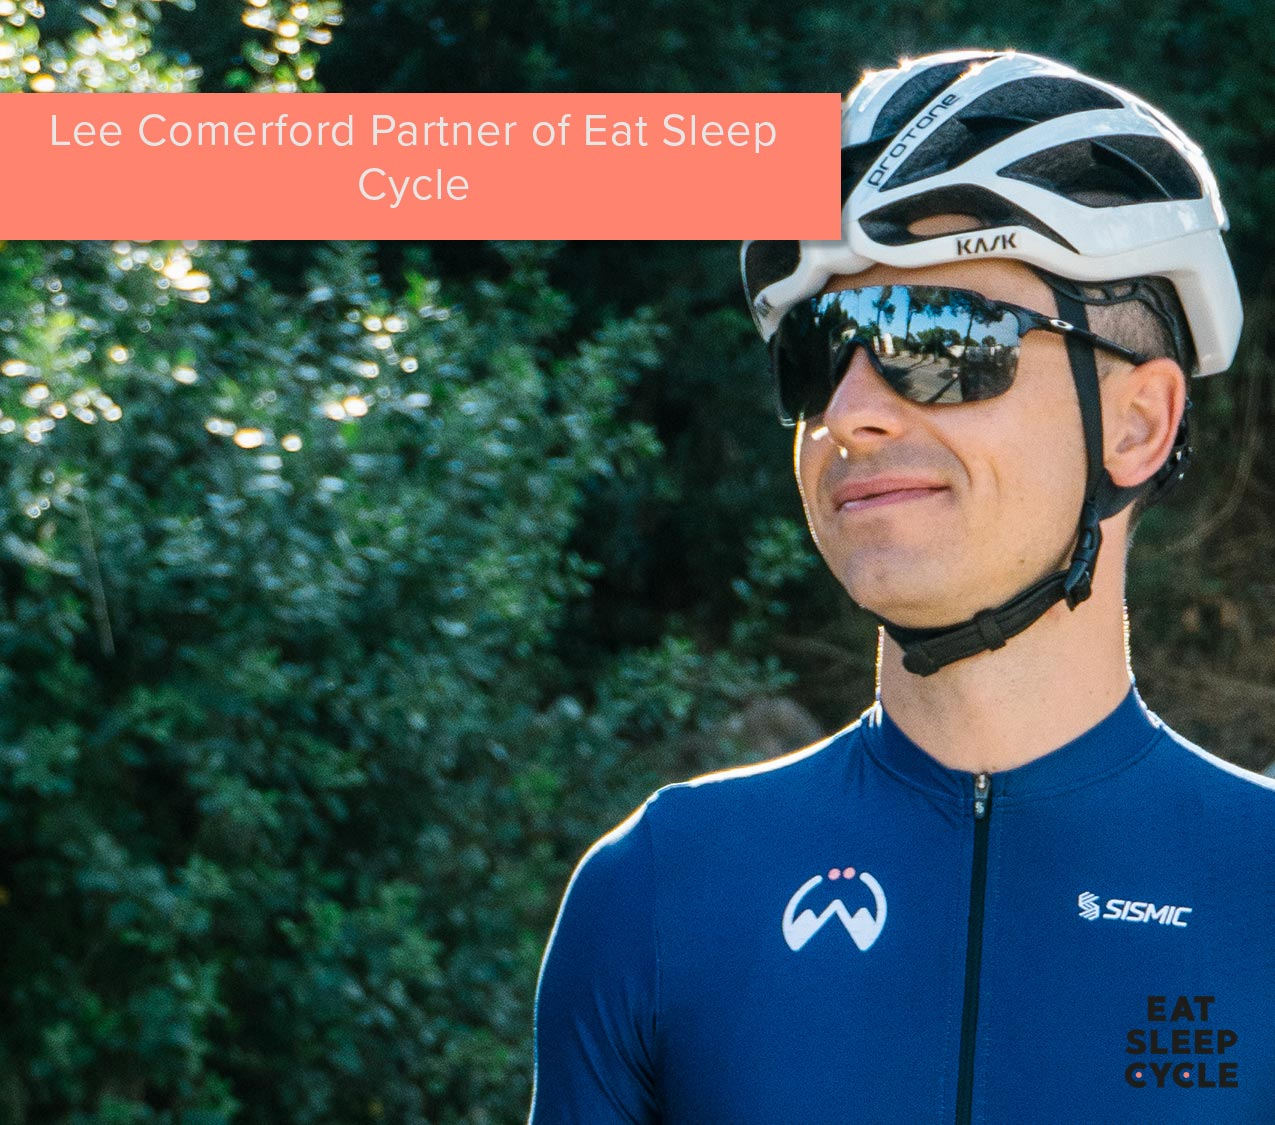 Cafe-Crowdfunding-Campaign-Eat-Sleep-Cycle-Girona-Cycling-Cafe-Lee-Comerford